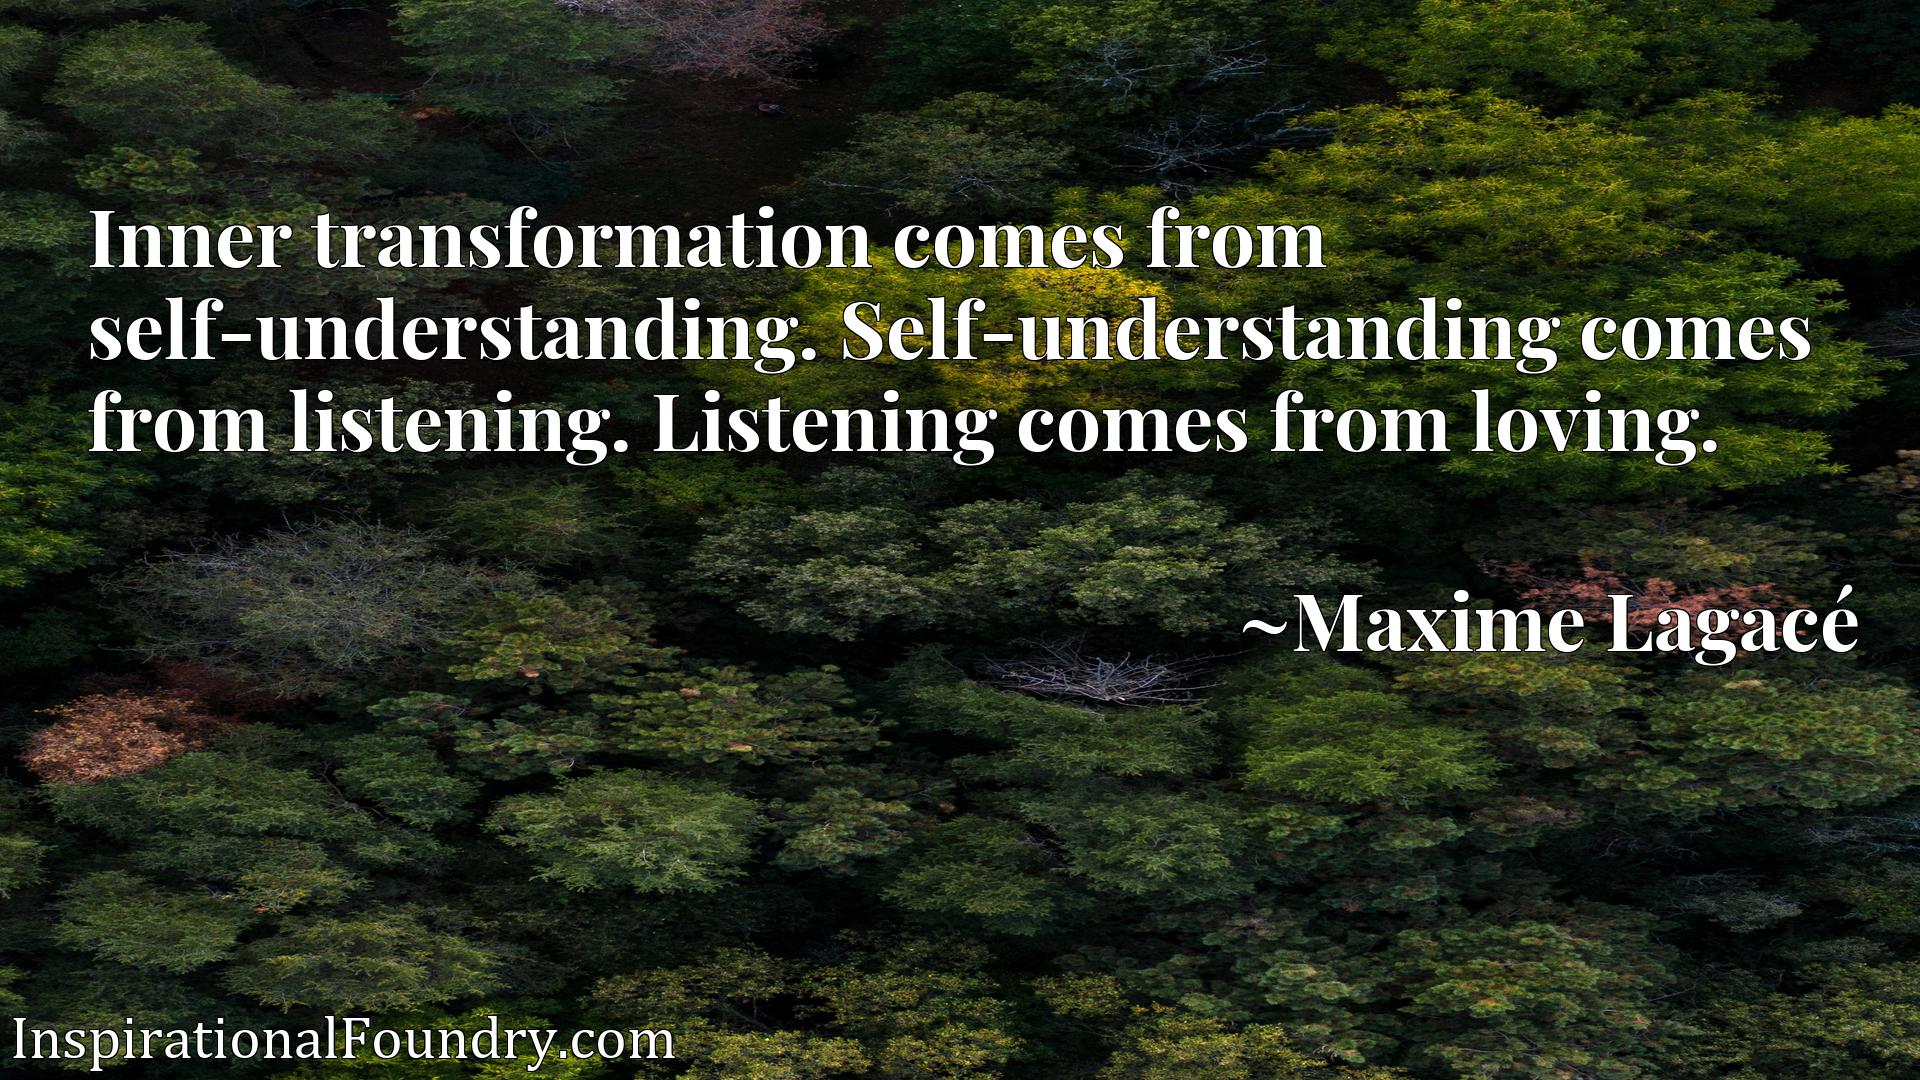 Inner transformation comes from self-understanding. Self-understanding comes from listening. Listening comes from loving.